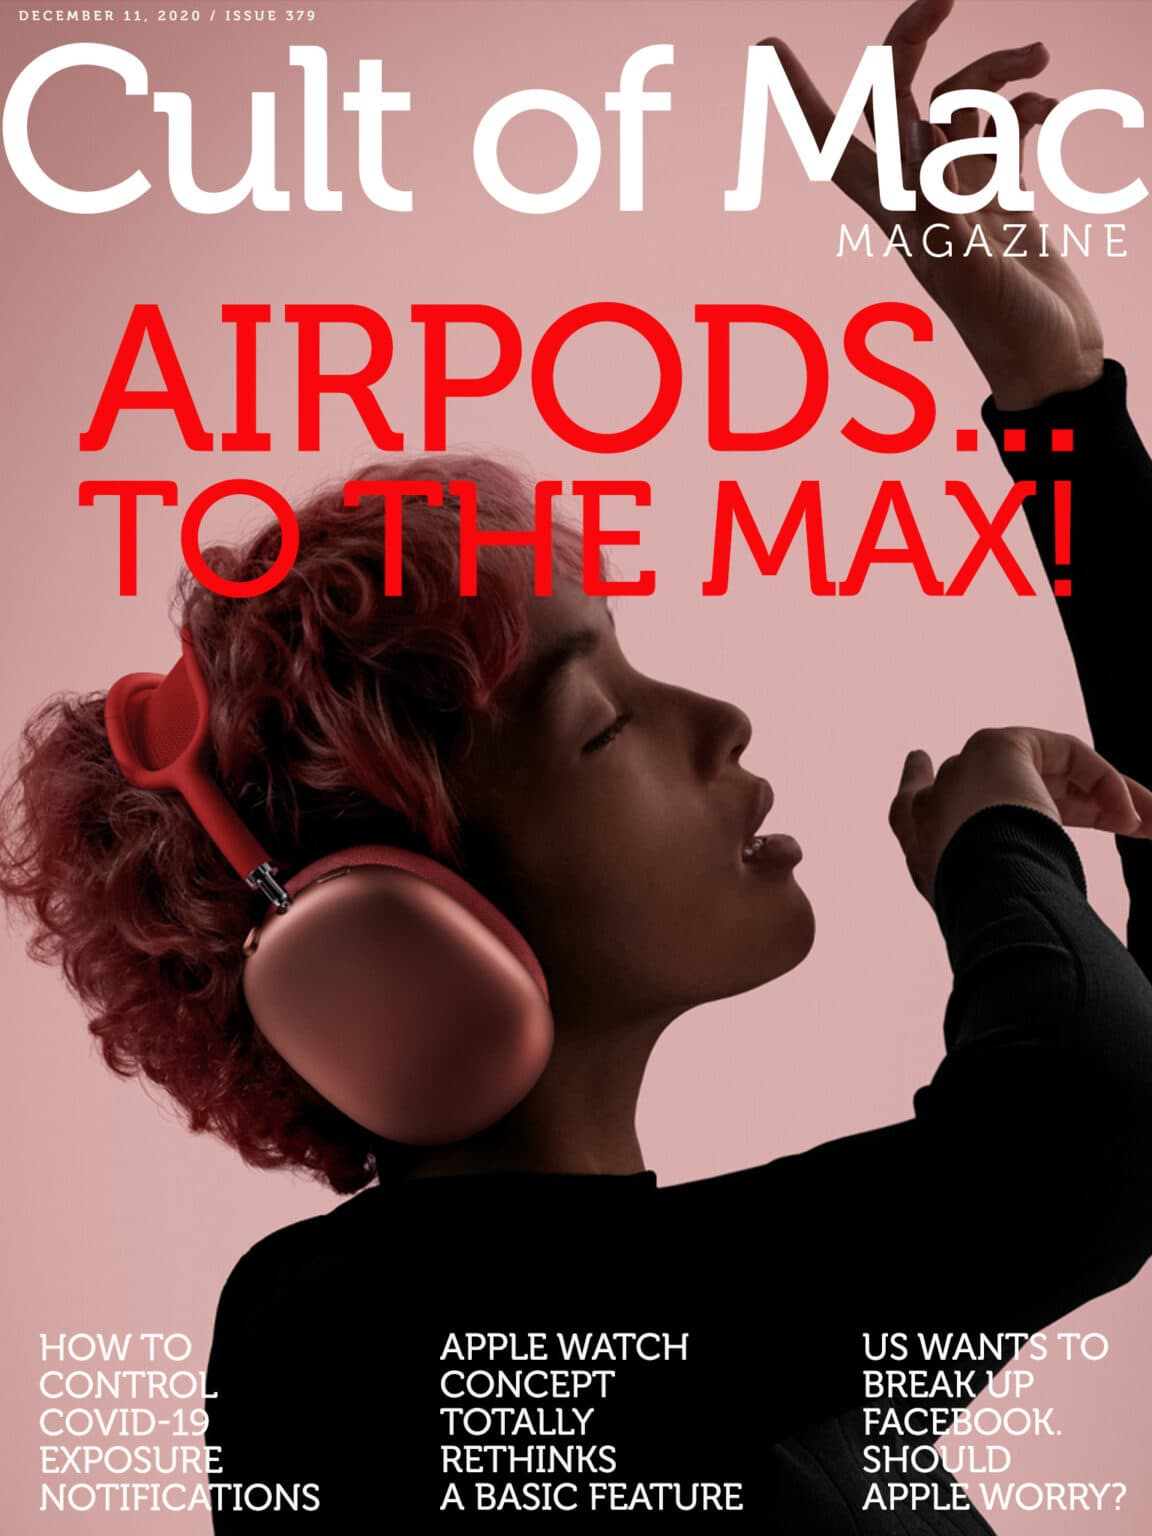 AirPods Max: Apple takes AirPods to the Max!